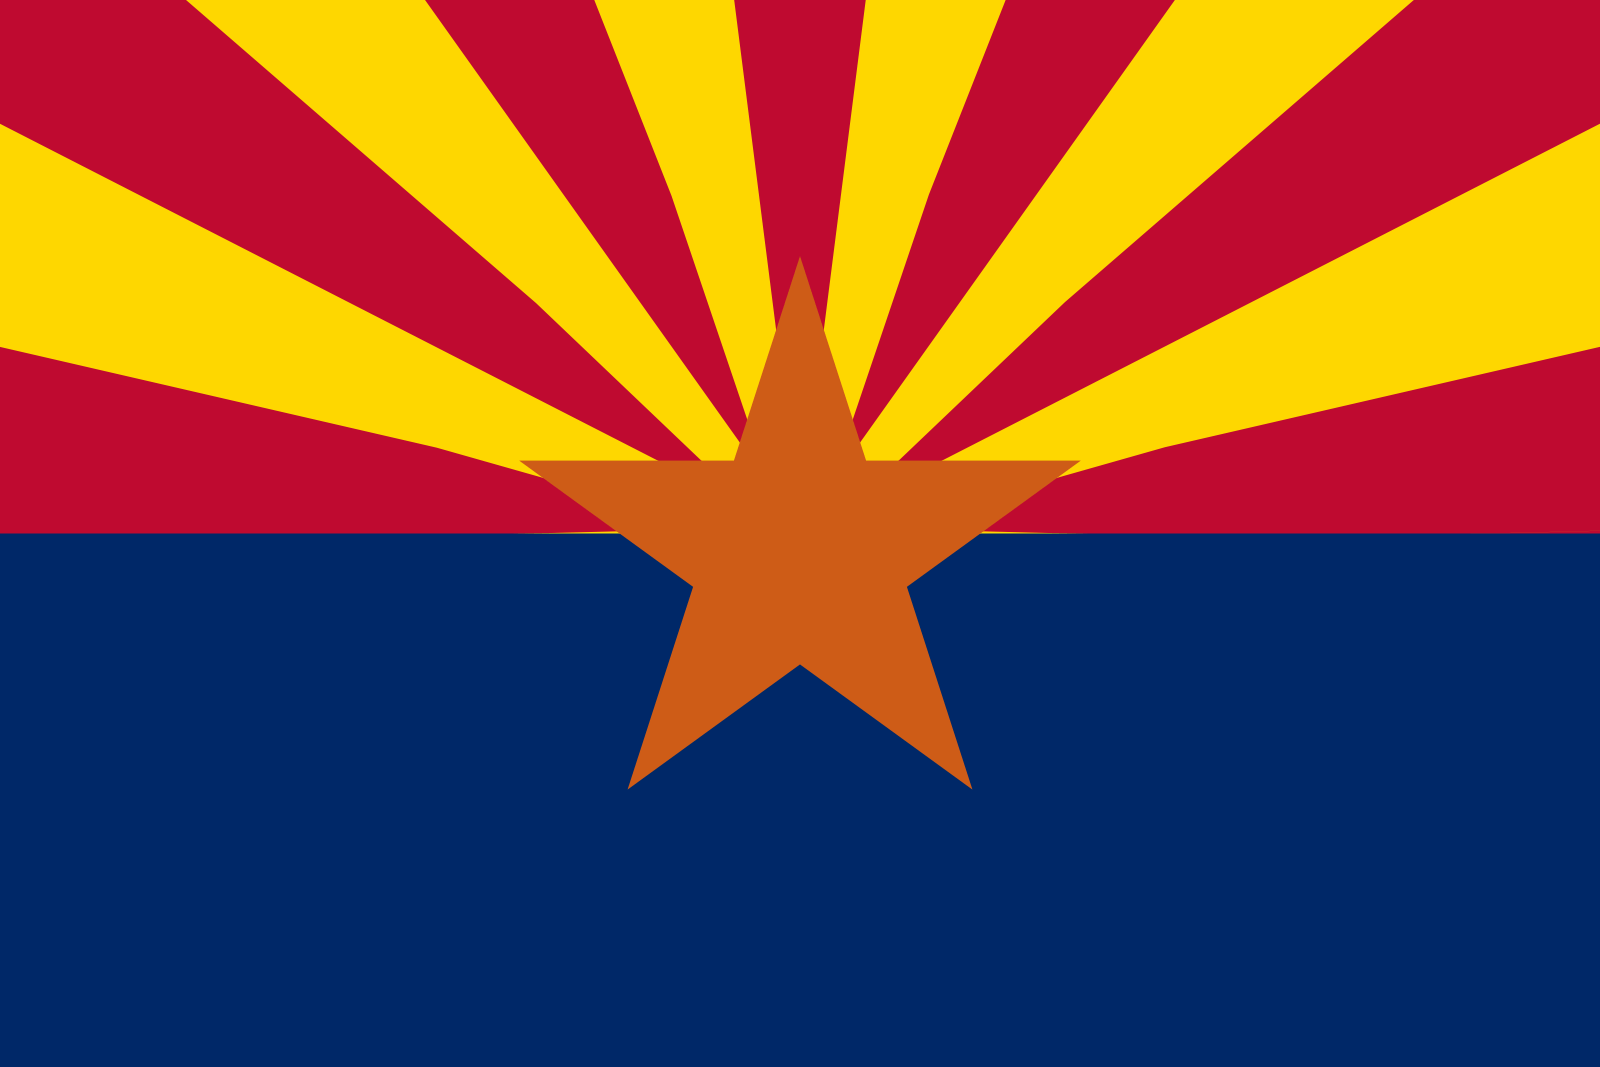 Who is the patron saint of Arizona?